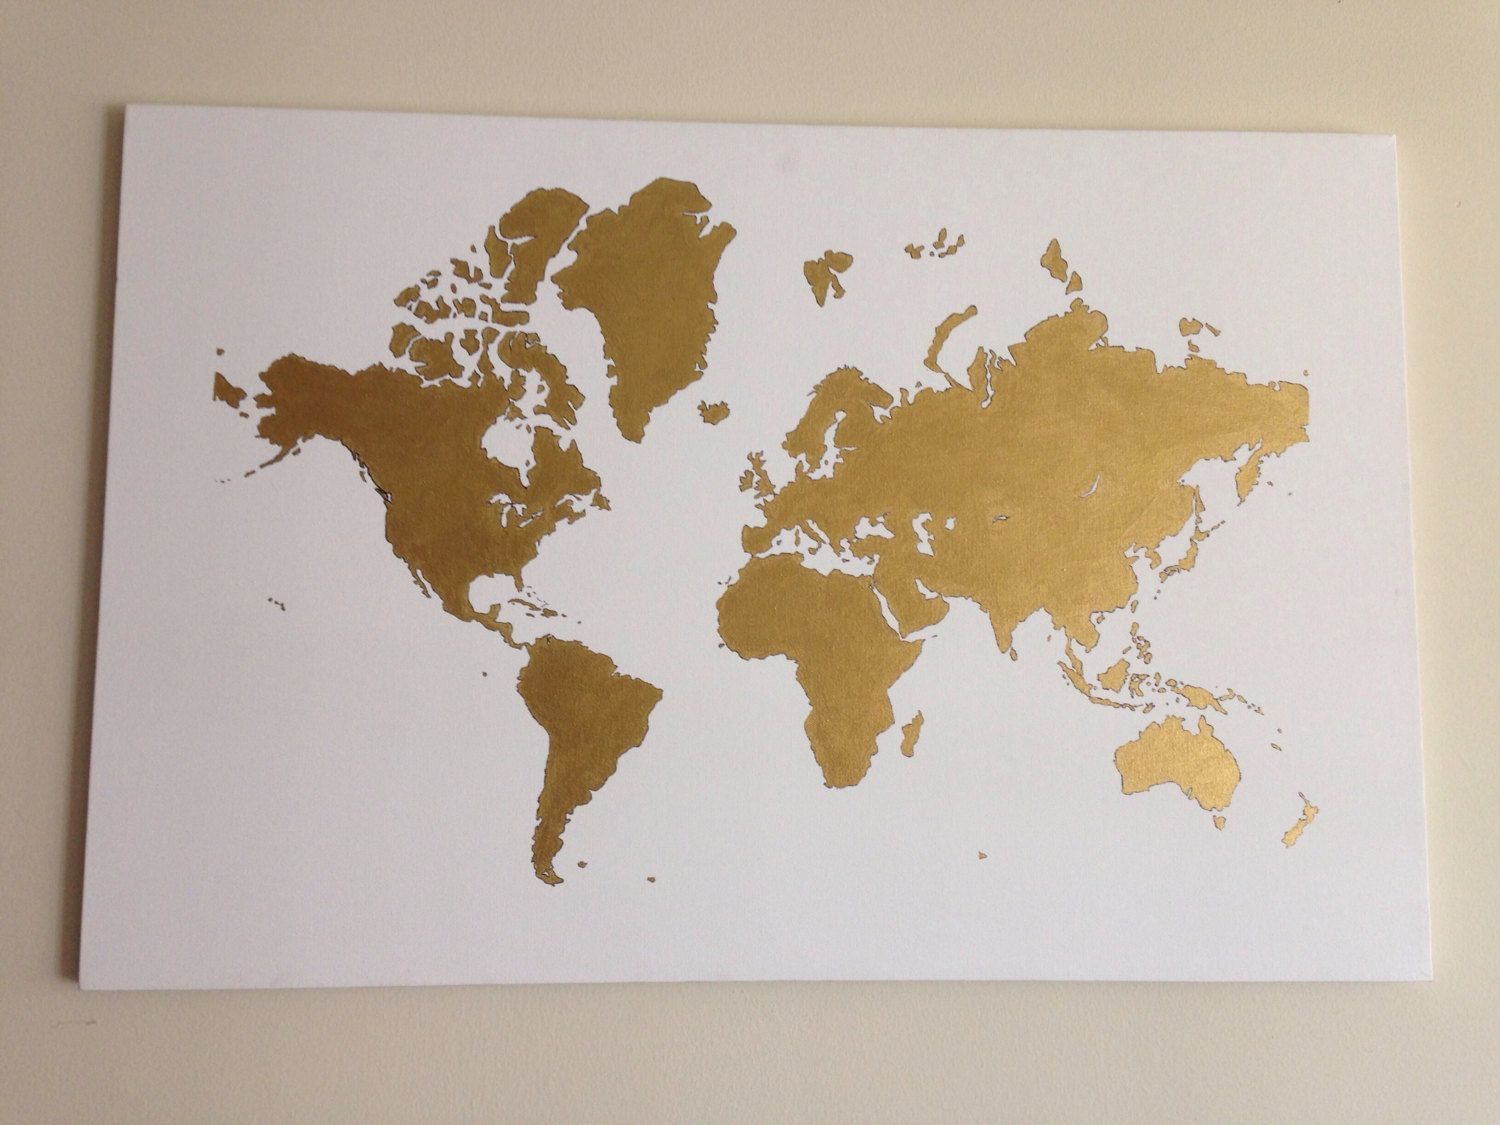 Hand painted world map canvas nifty spiffy crafty pinterest hand painted world map canvas gumiabroncs Gallery